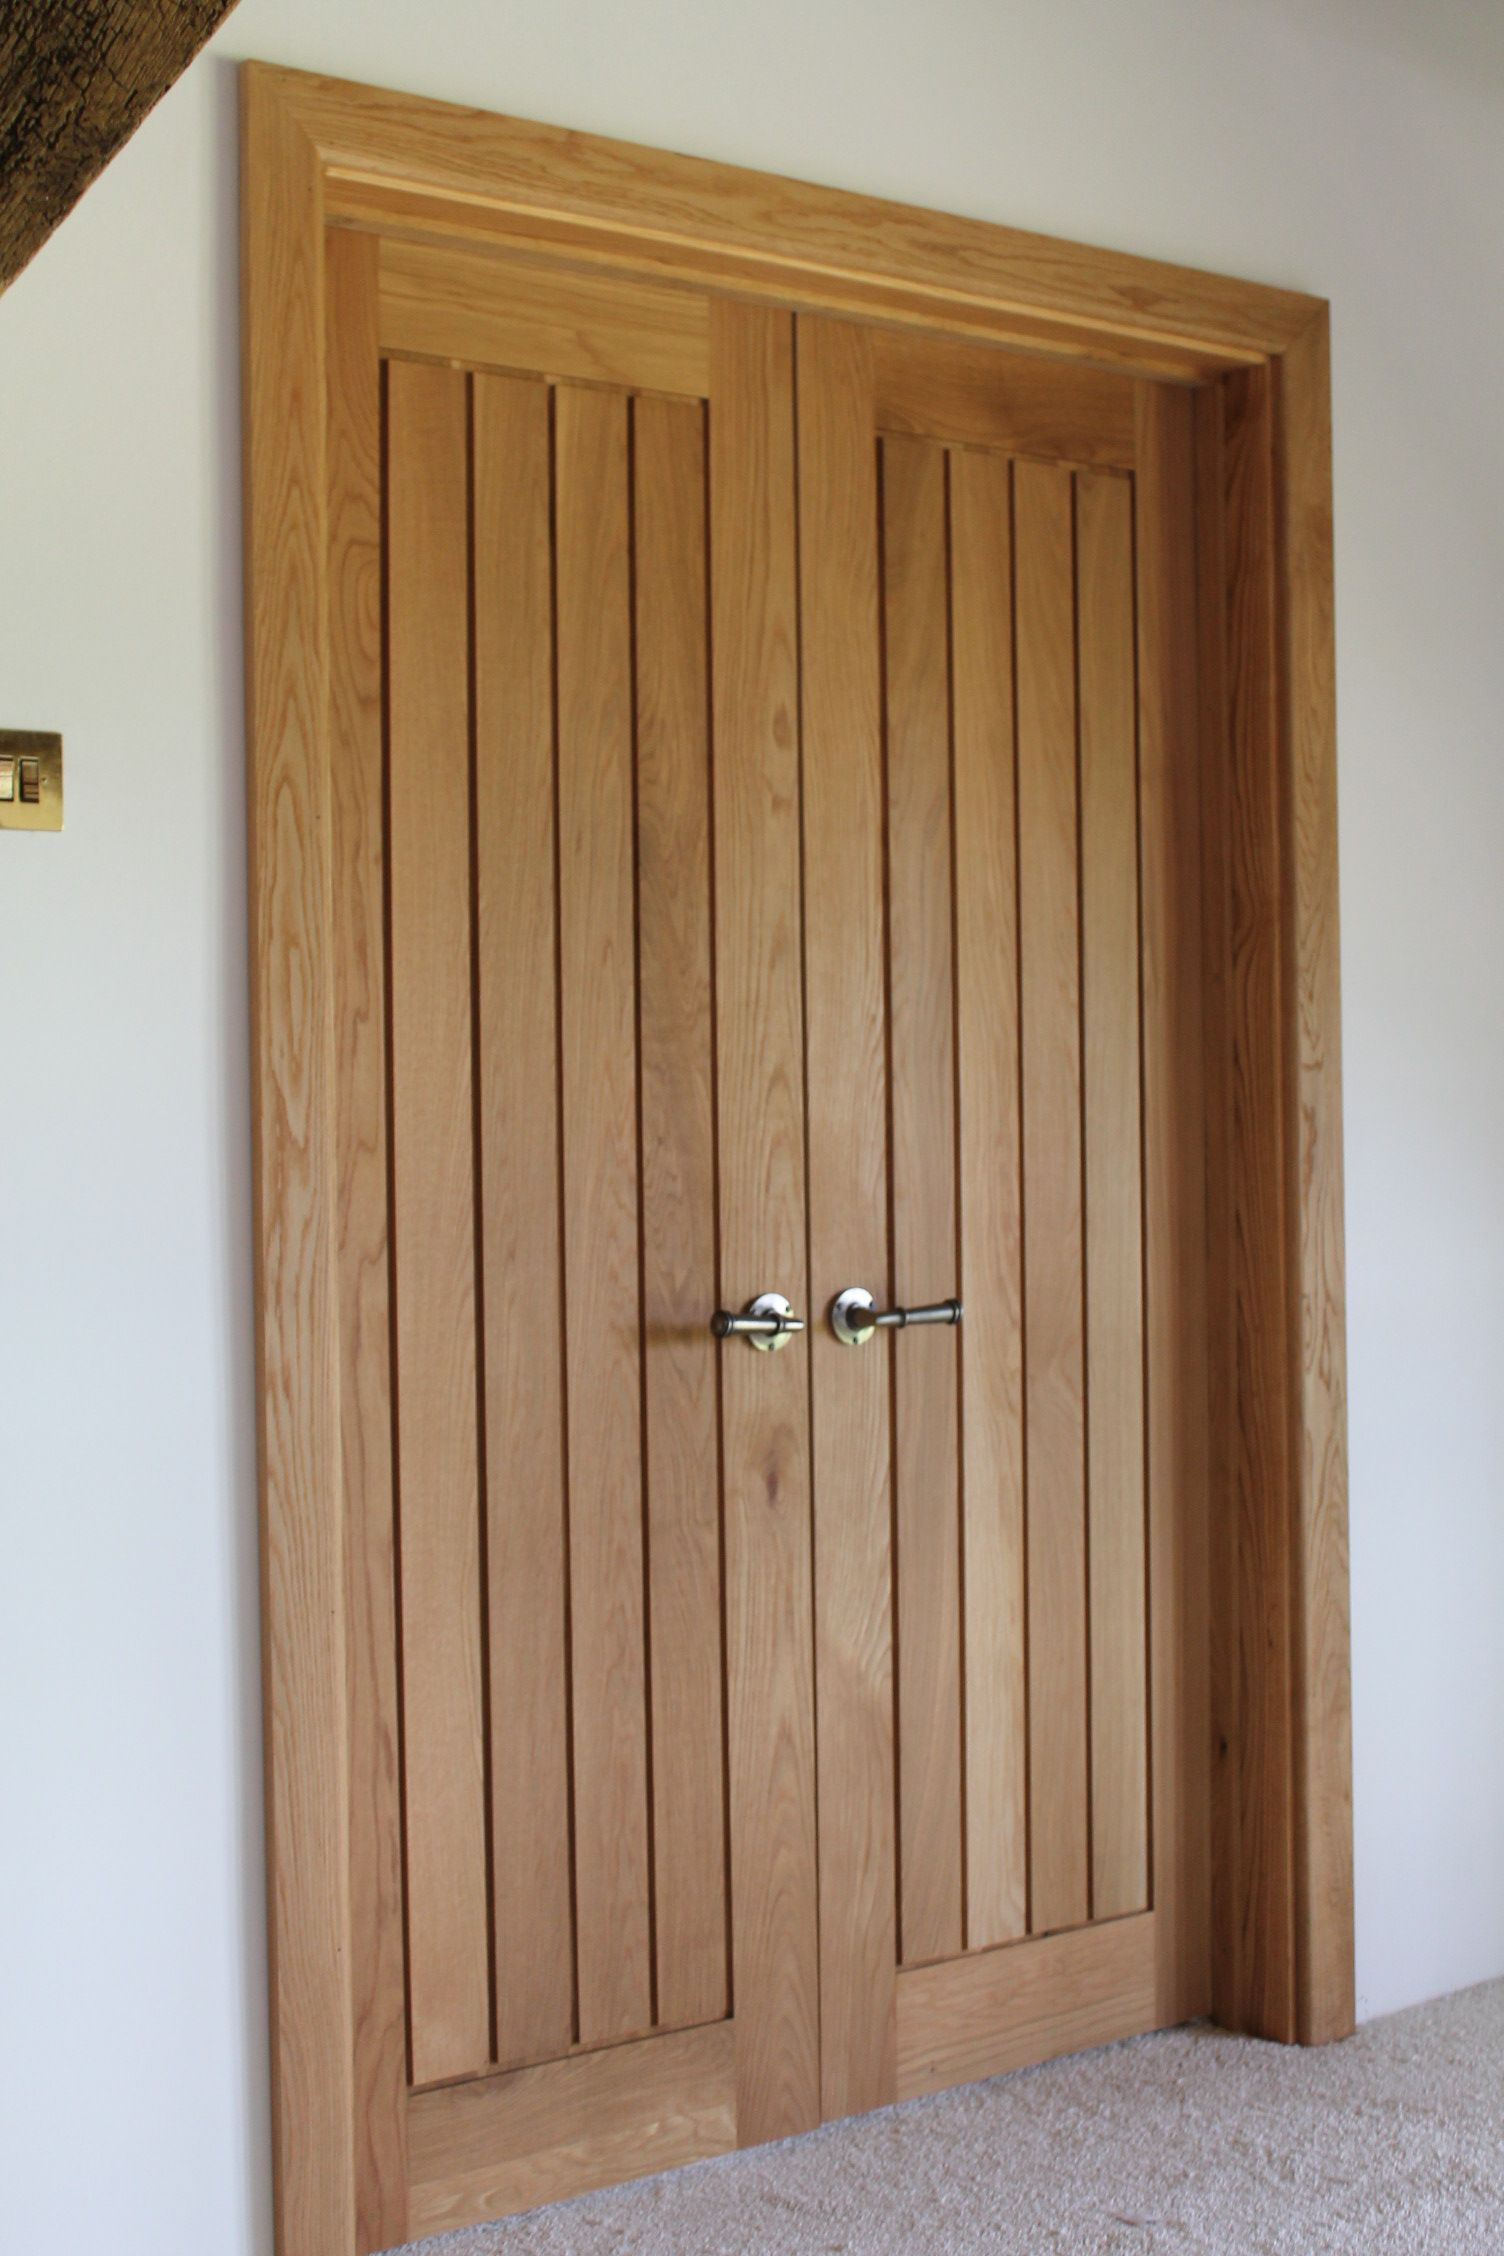 Mexicano Oak Door Double Doors Mexicana Solid Oak Mexicano Door. / & Mexicano Oak Door Double Doors Mexicana Solid Oak Mexicano Door ...